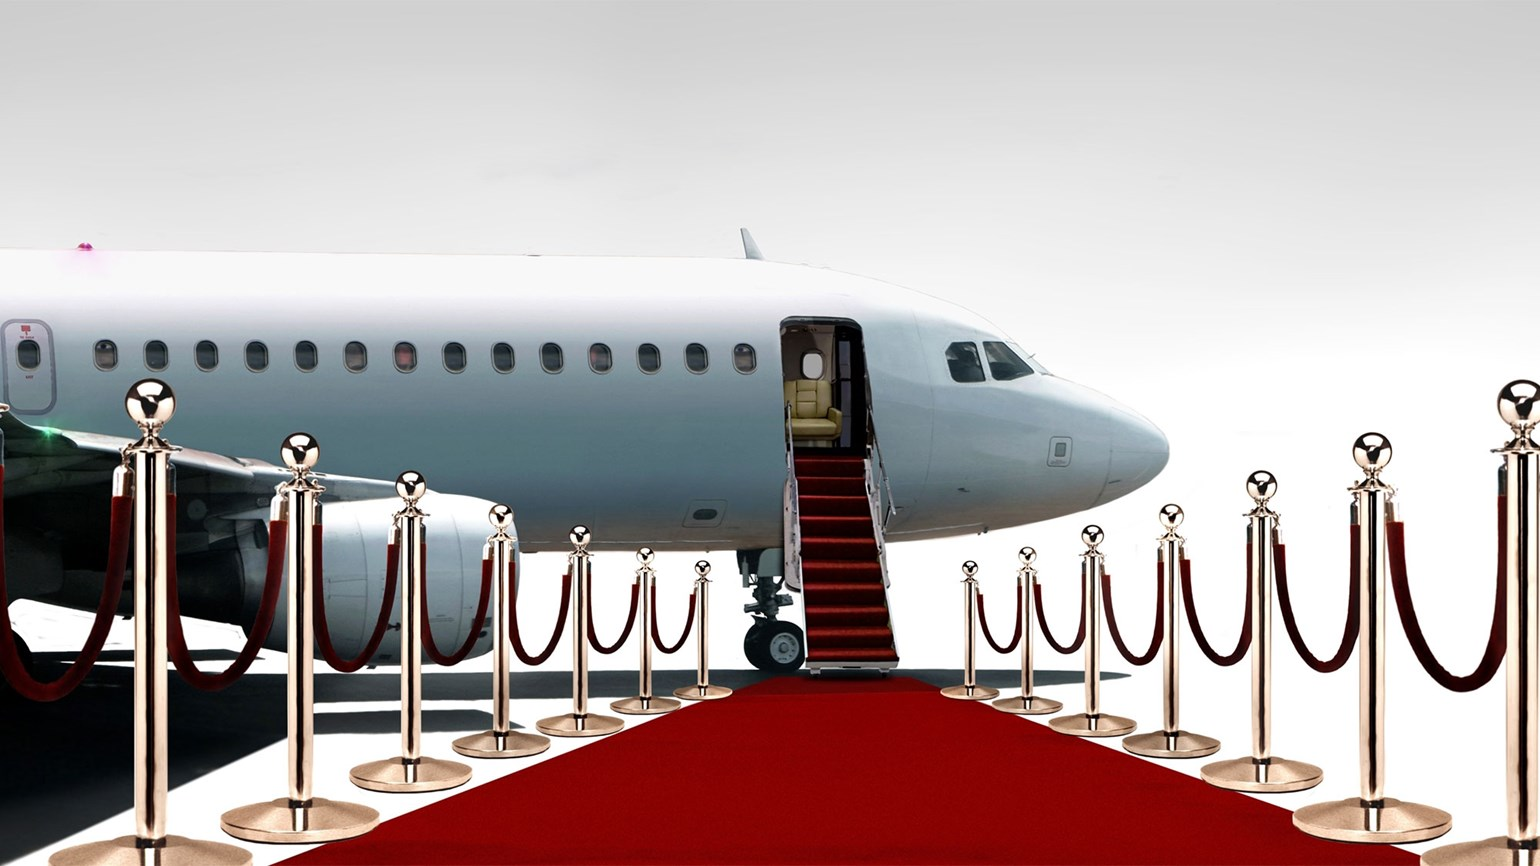 Concern over Trump's rhetoric has travel rolling out red carpet